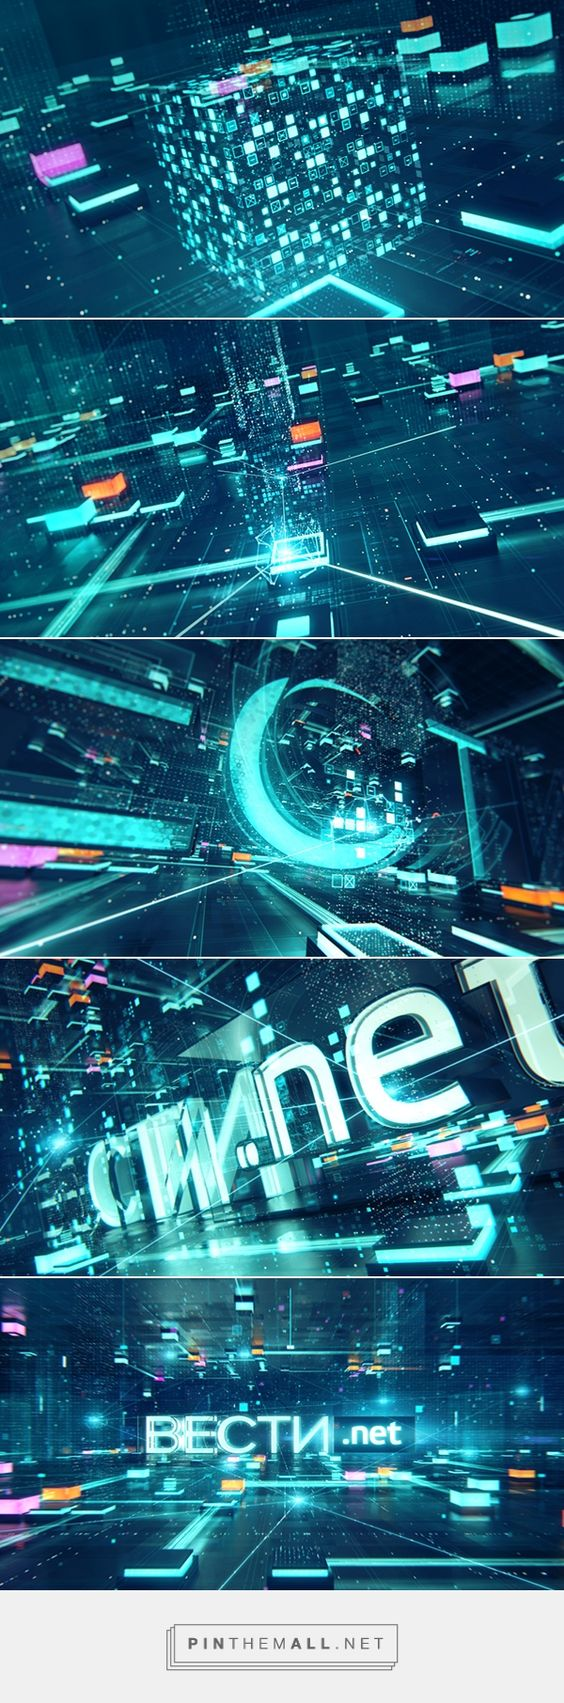 Vesti.Net on Behance... - a grouped images picture - Pin Them All